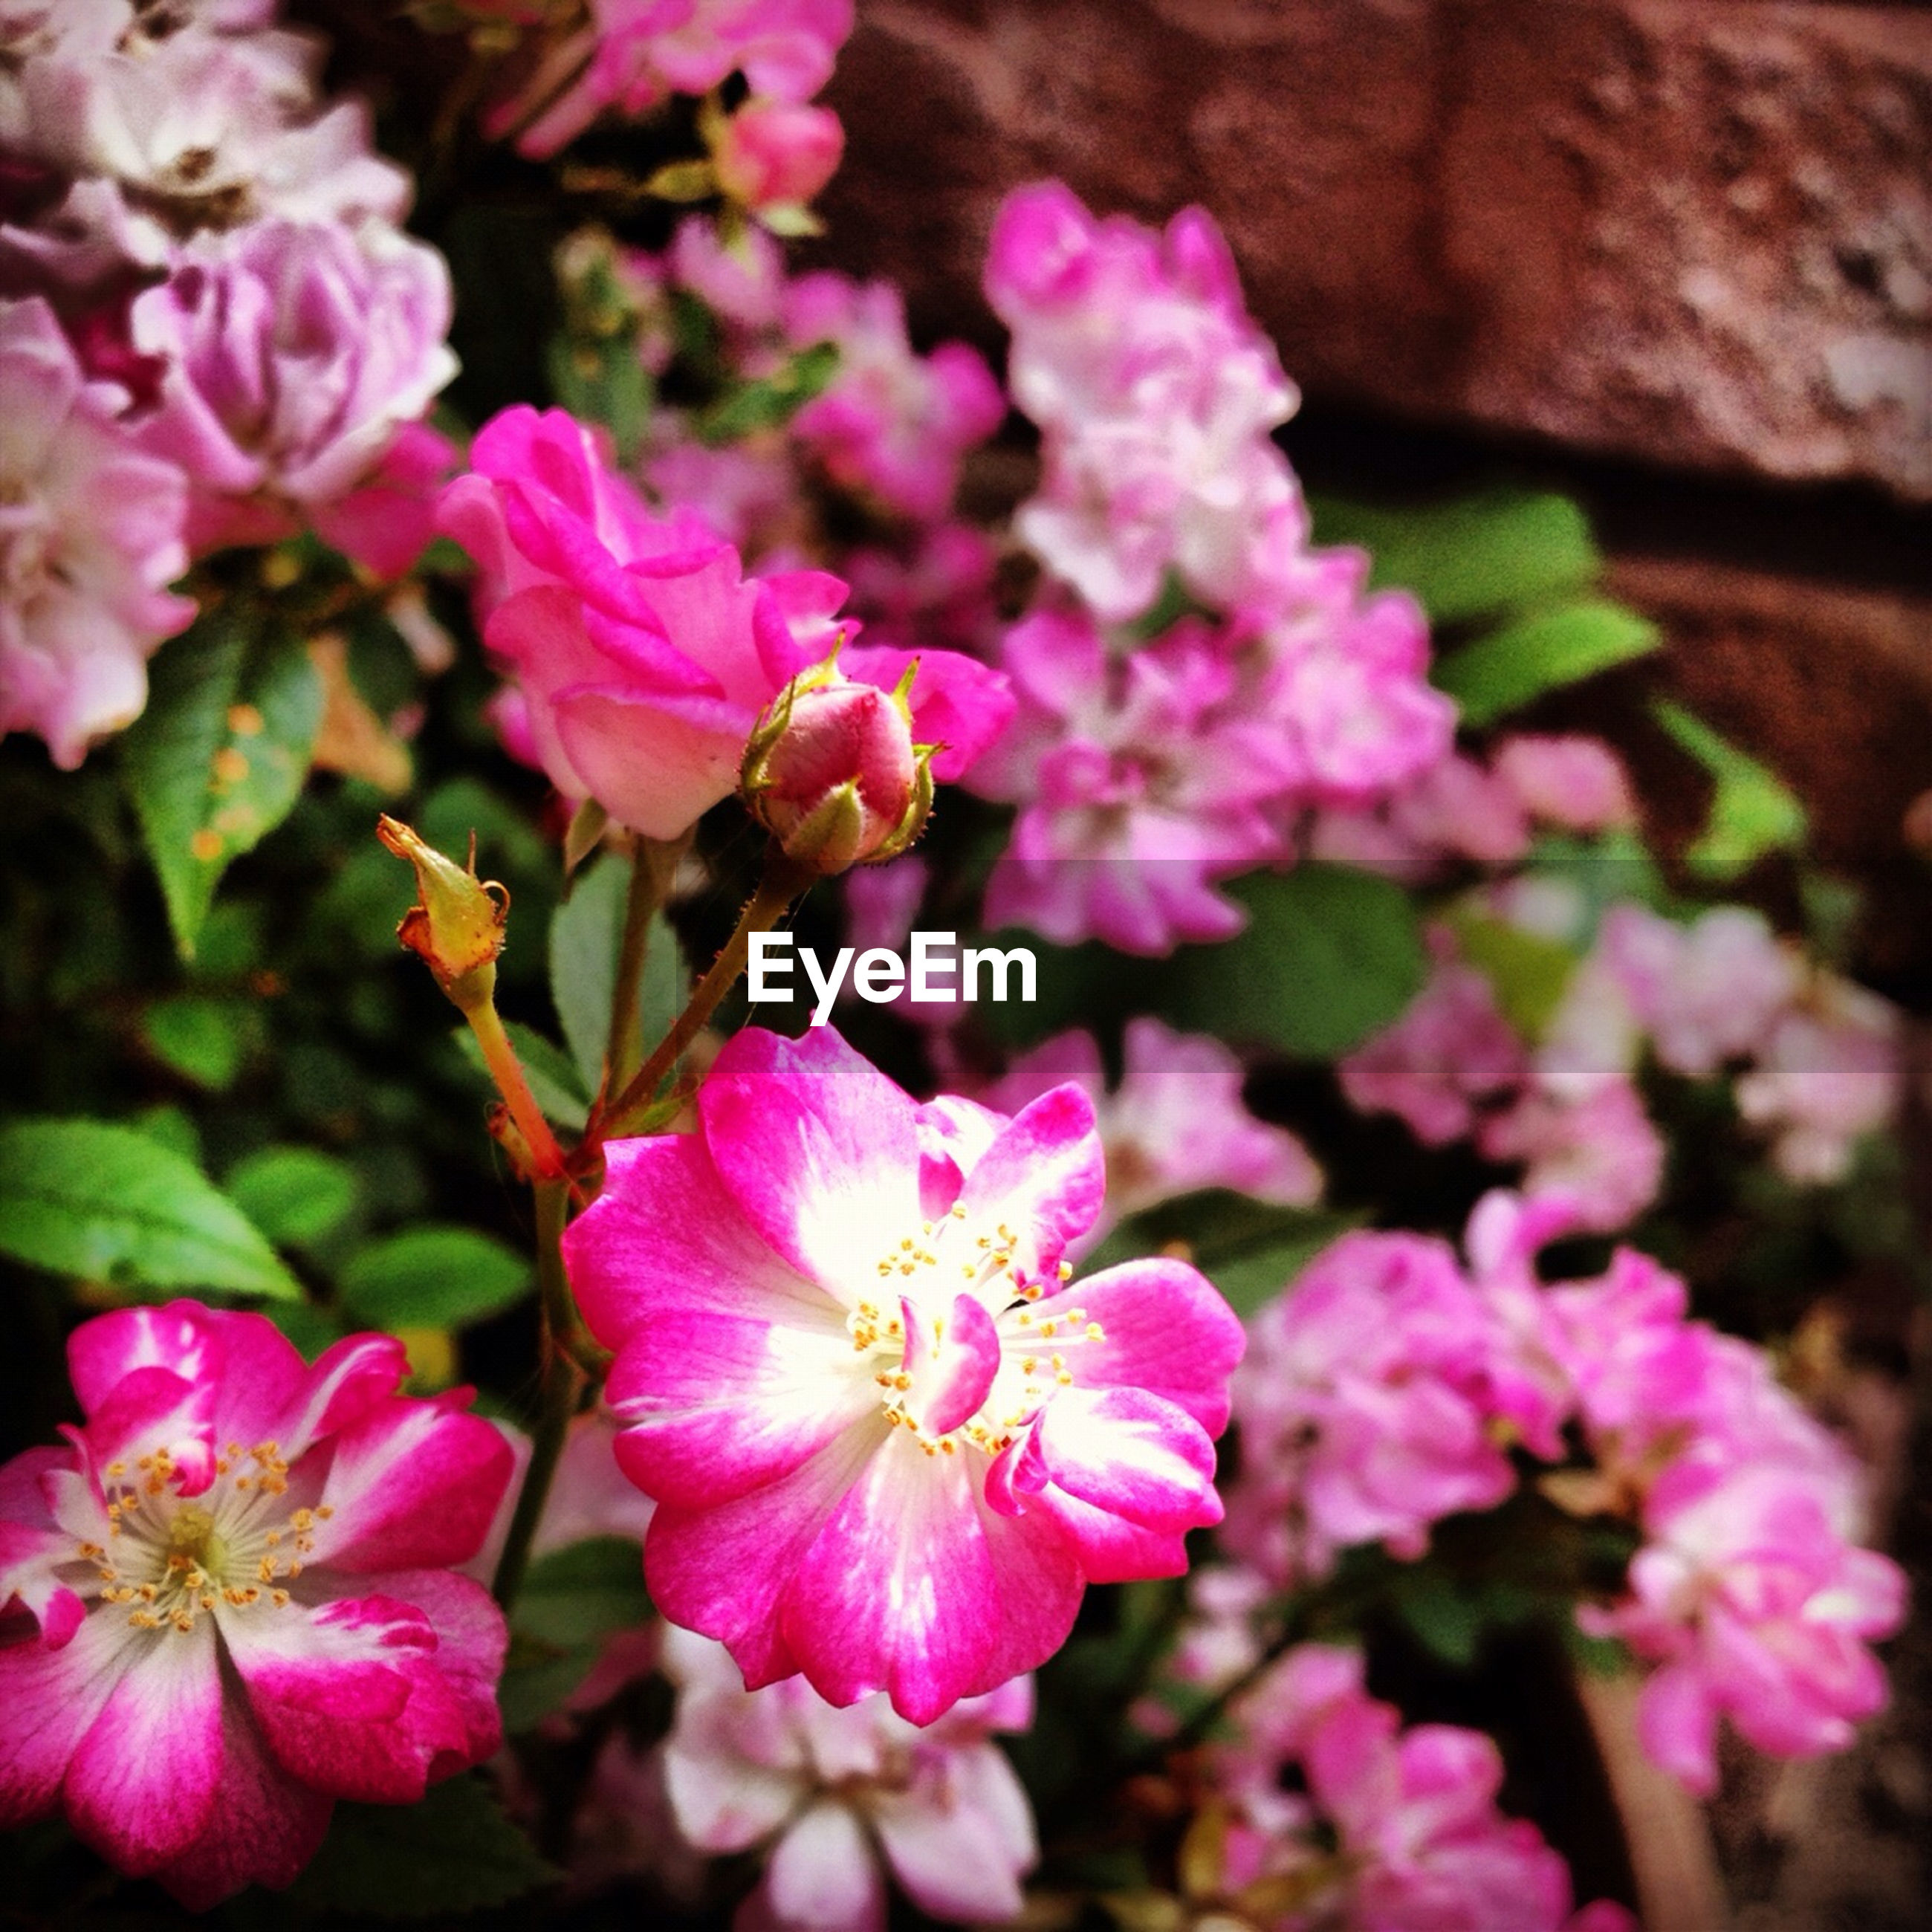 flower, freshness, fragility, petal, pink color, growth, beauty in nature, flower head, close-up, nature, blooming, focus on foreground, plant, in bloom, pink, blossom, day, outdoors, botany, no people